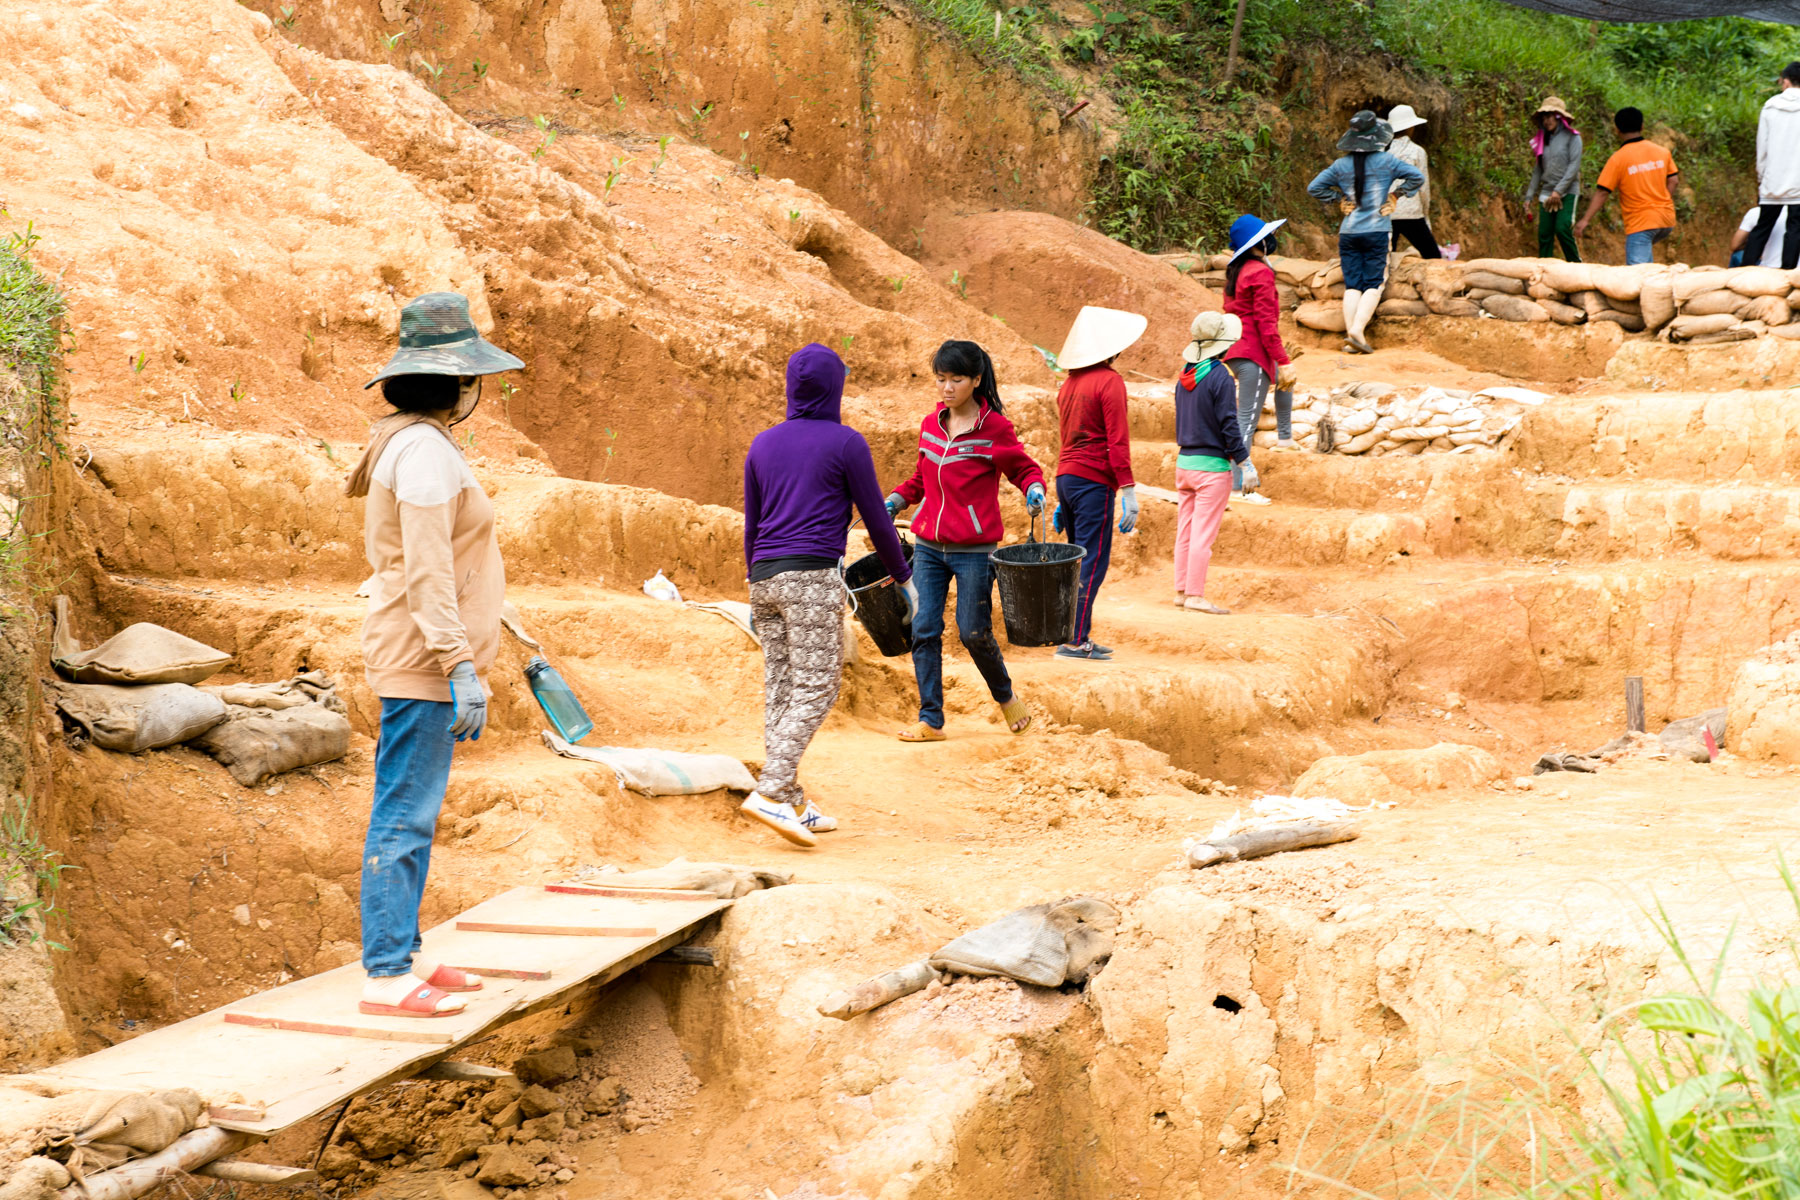 Local workers assisting a Defense POW/MIA Accounting Agency (DPAA) recovery team pass buckets of excavated soil during operations in Quang Nam province, Socialist Republic of Vietnam, June 18, 2018. A DPAA recovery team deployed to the area in search of the remains of U.S. service members lost during the Vietnam War. (U.S. Navy photo by Mass Communication Specialist 2nd Class Claire Farin)